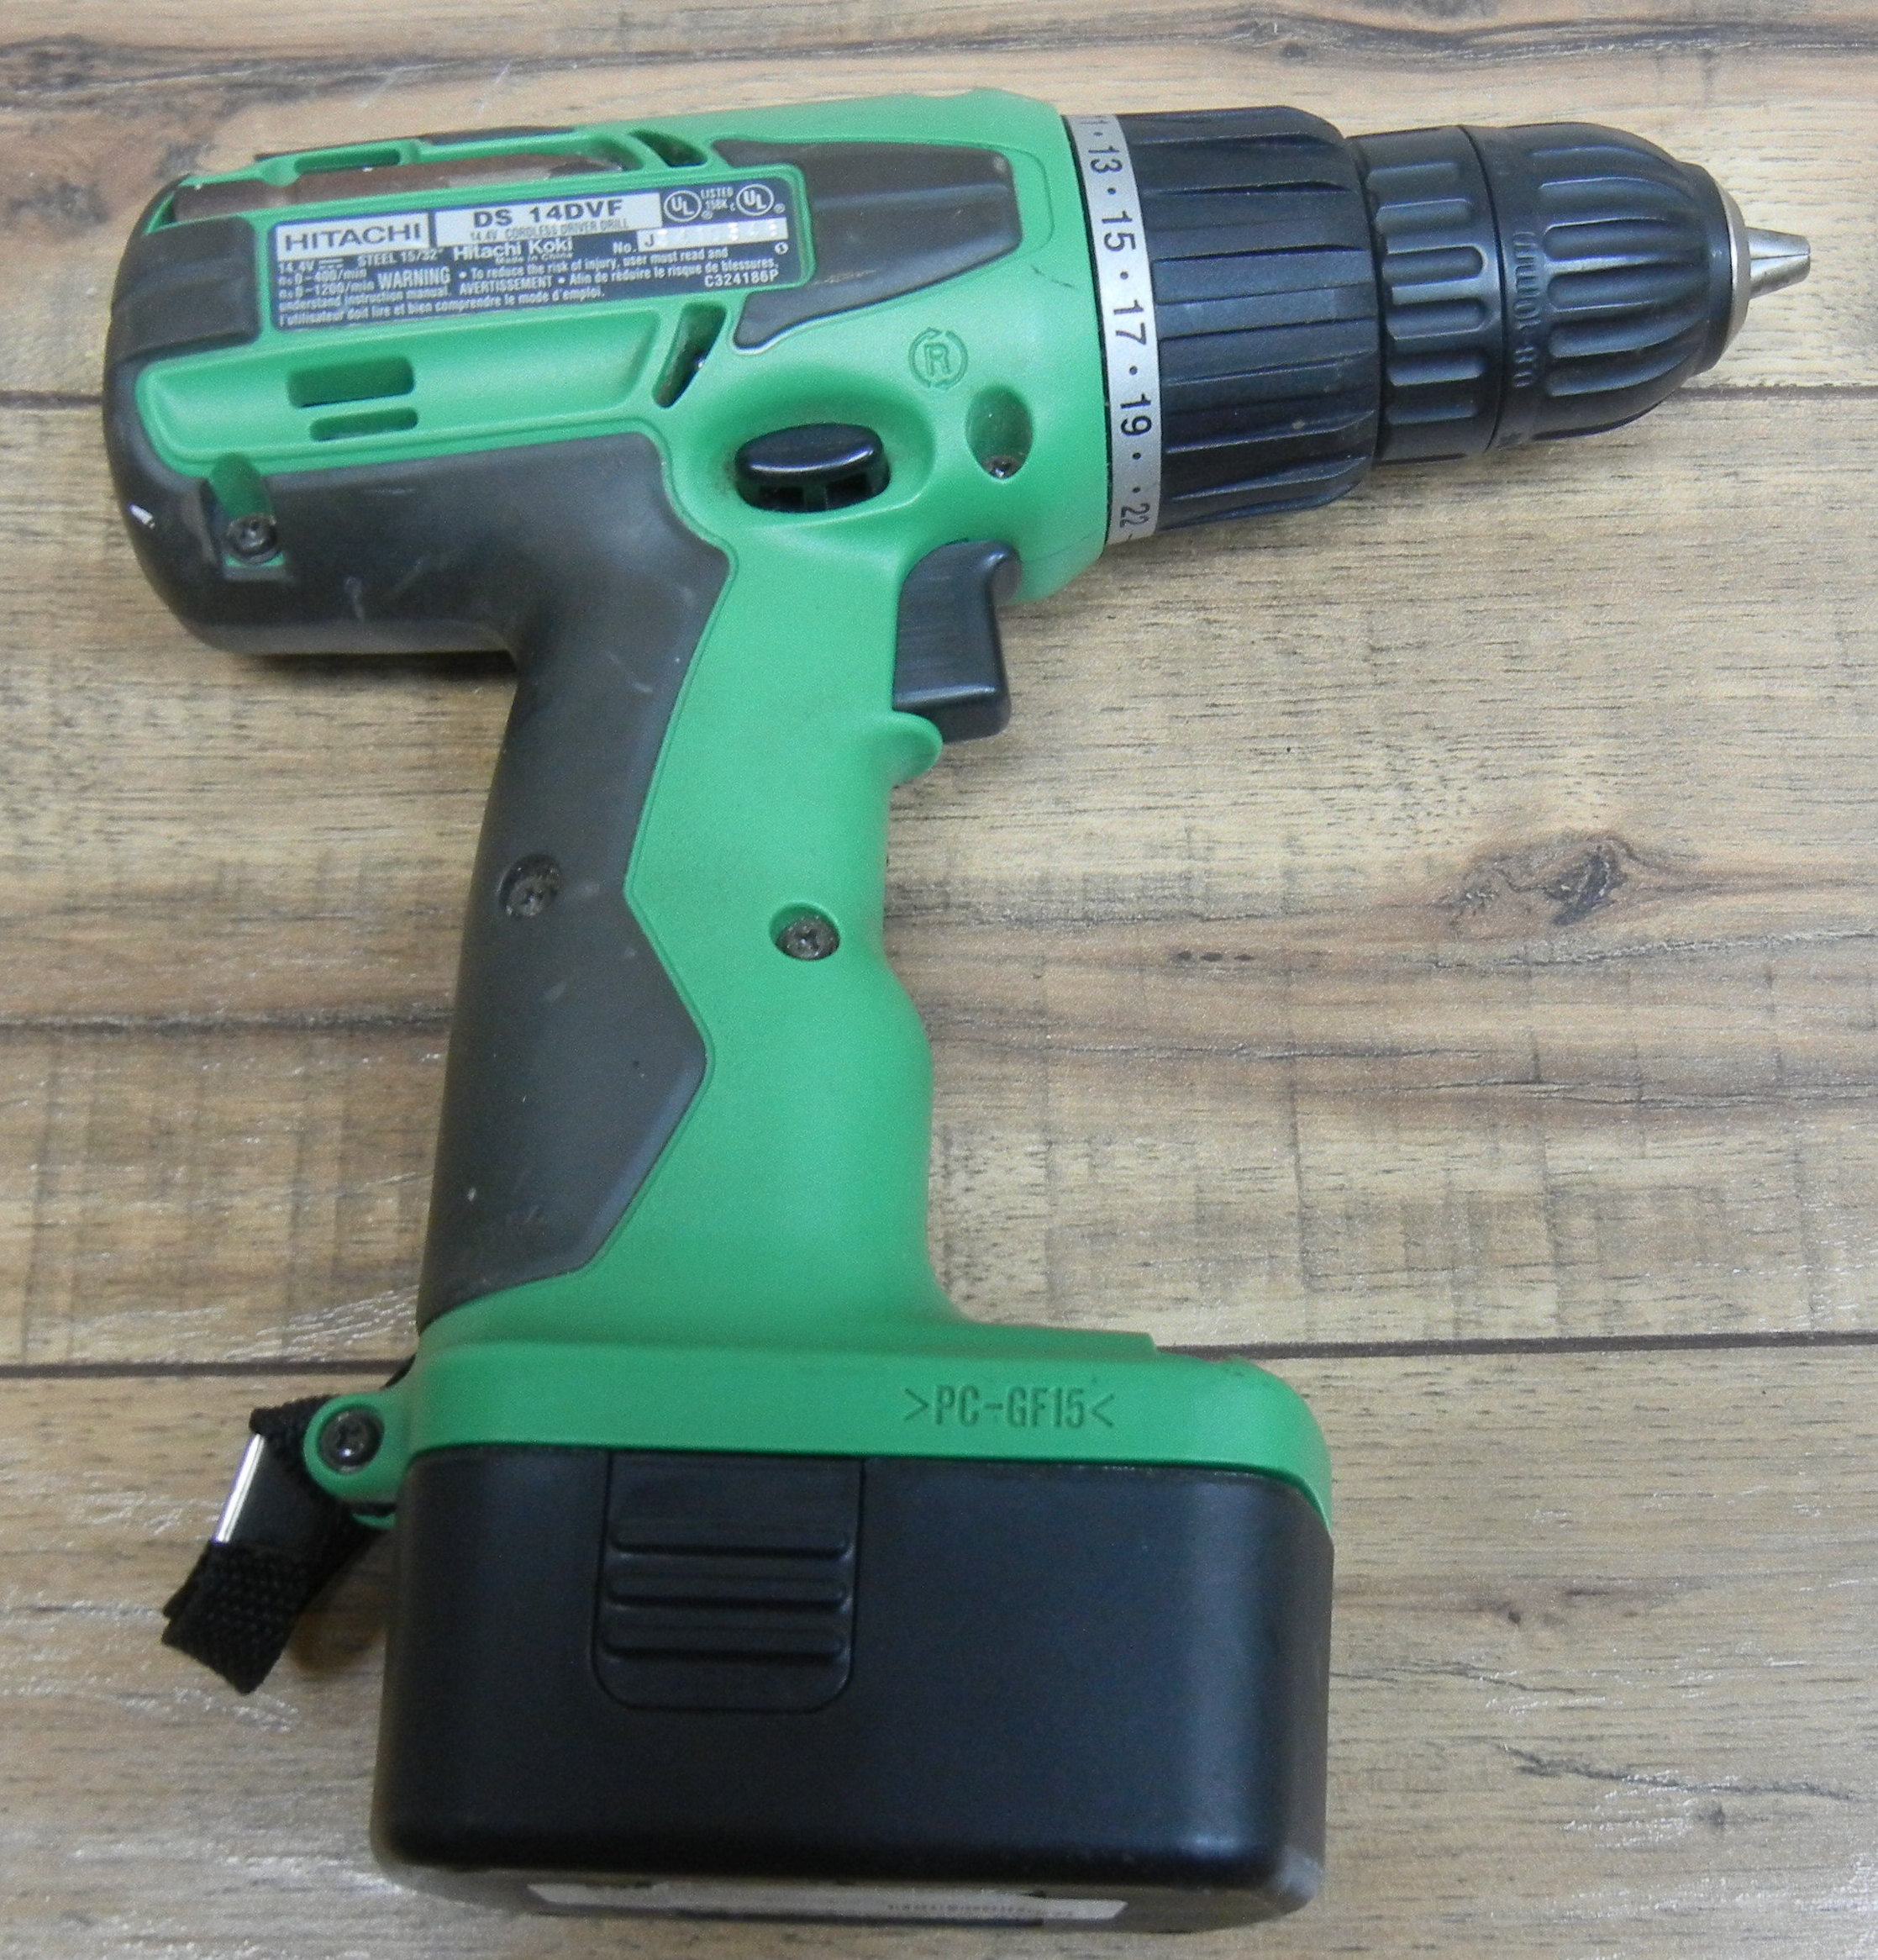 HITACHI/TOOLS - DS 14DVF - DRILL TOOLS-POWER